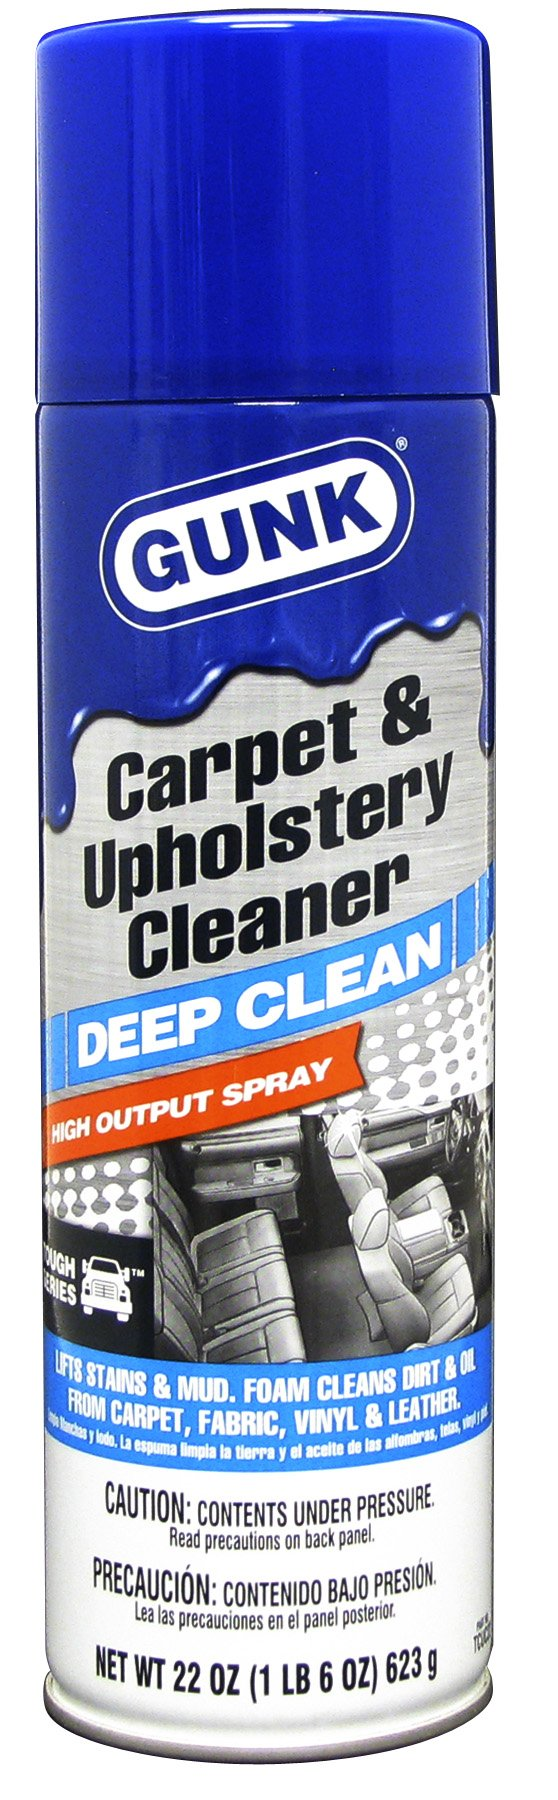 Gunk TCUC22-12PK Tough Series Carpet and Upholstery Cleaner - 22 oz, (Case of 12)